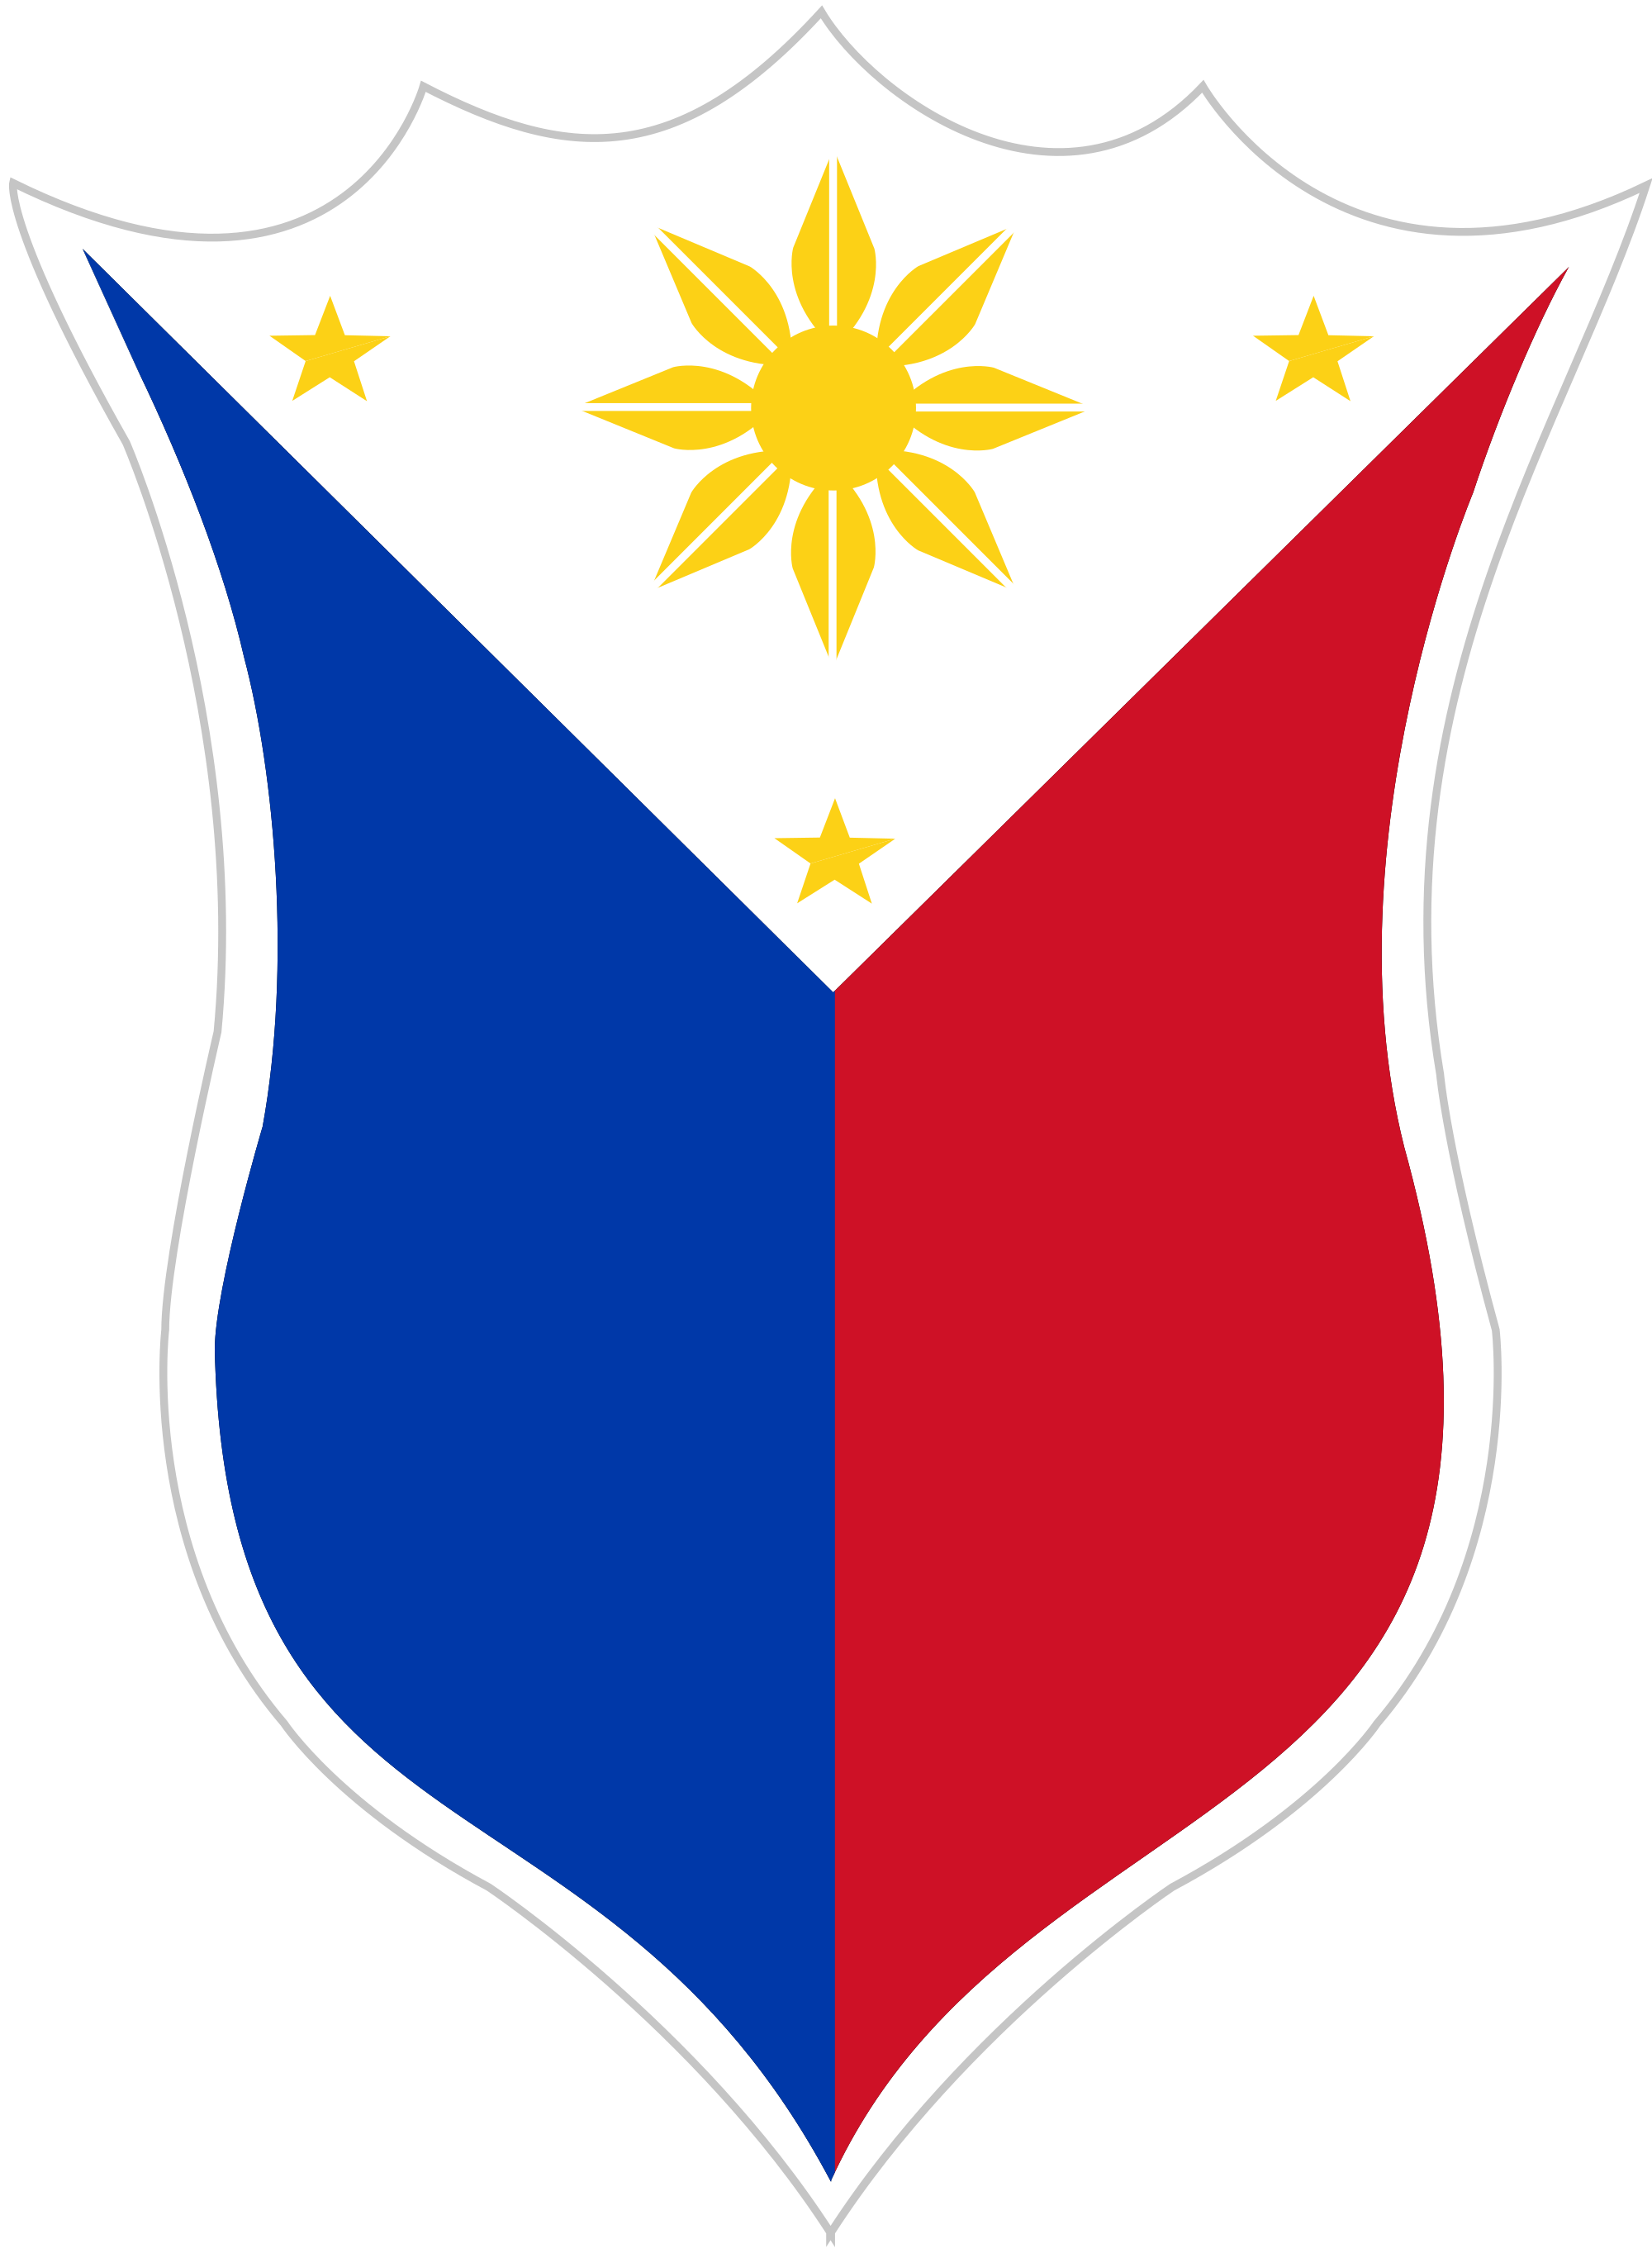 Shield clipart flag. Philippine png hd free